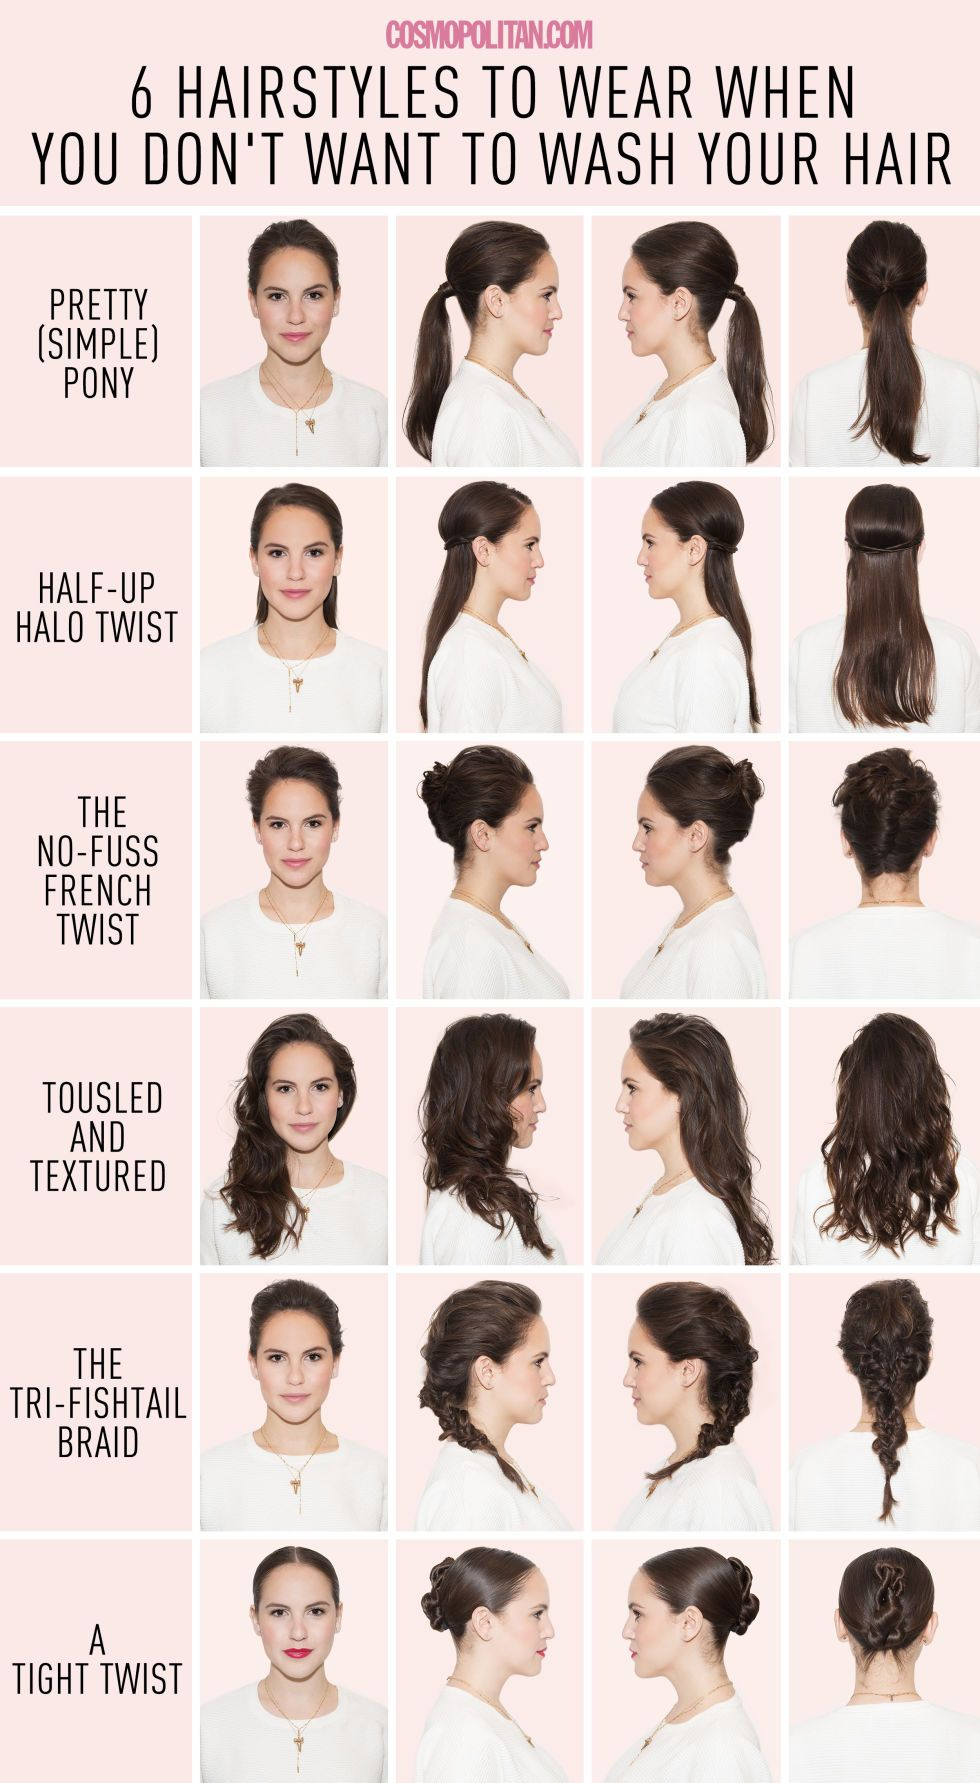 6 hairstyles for when you just can't wash your hair | hair